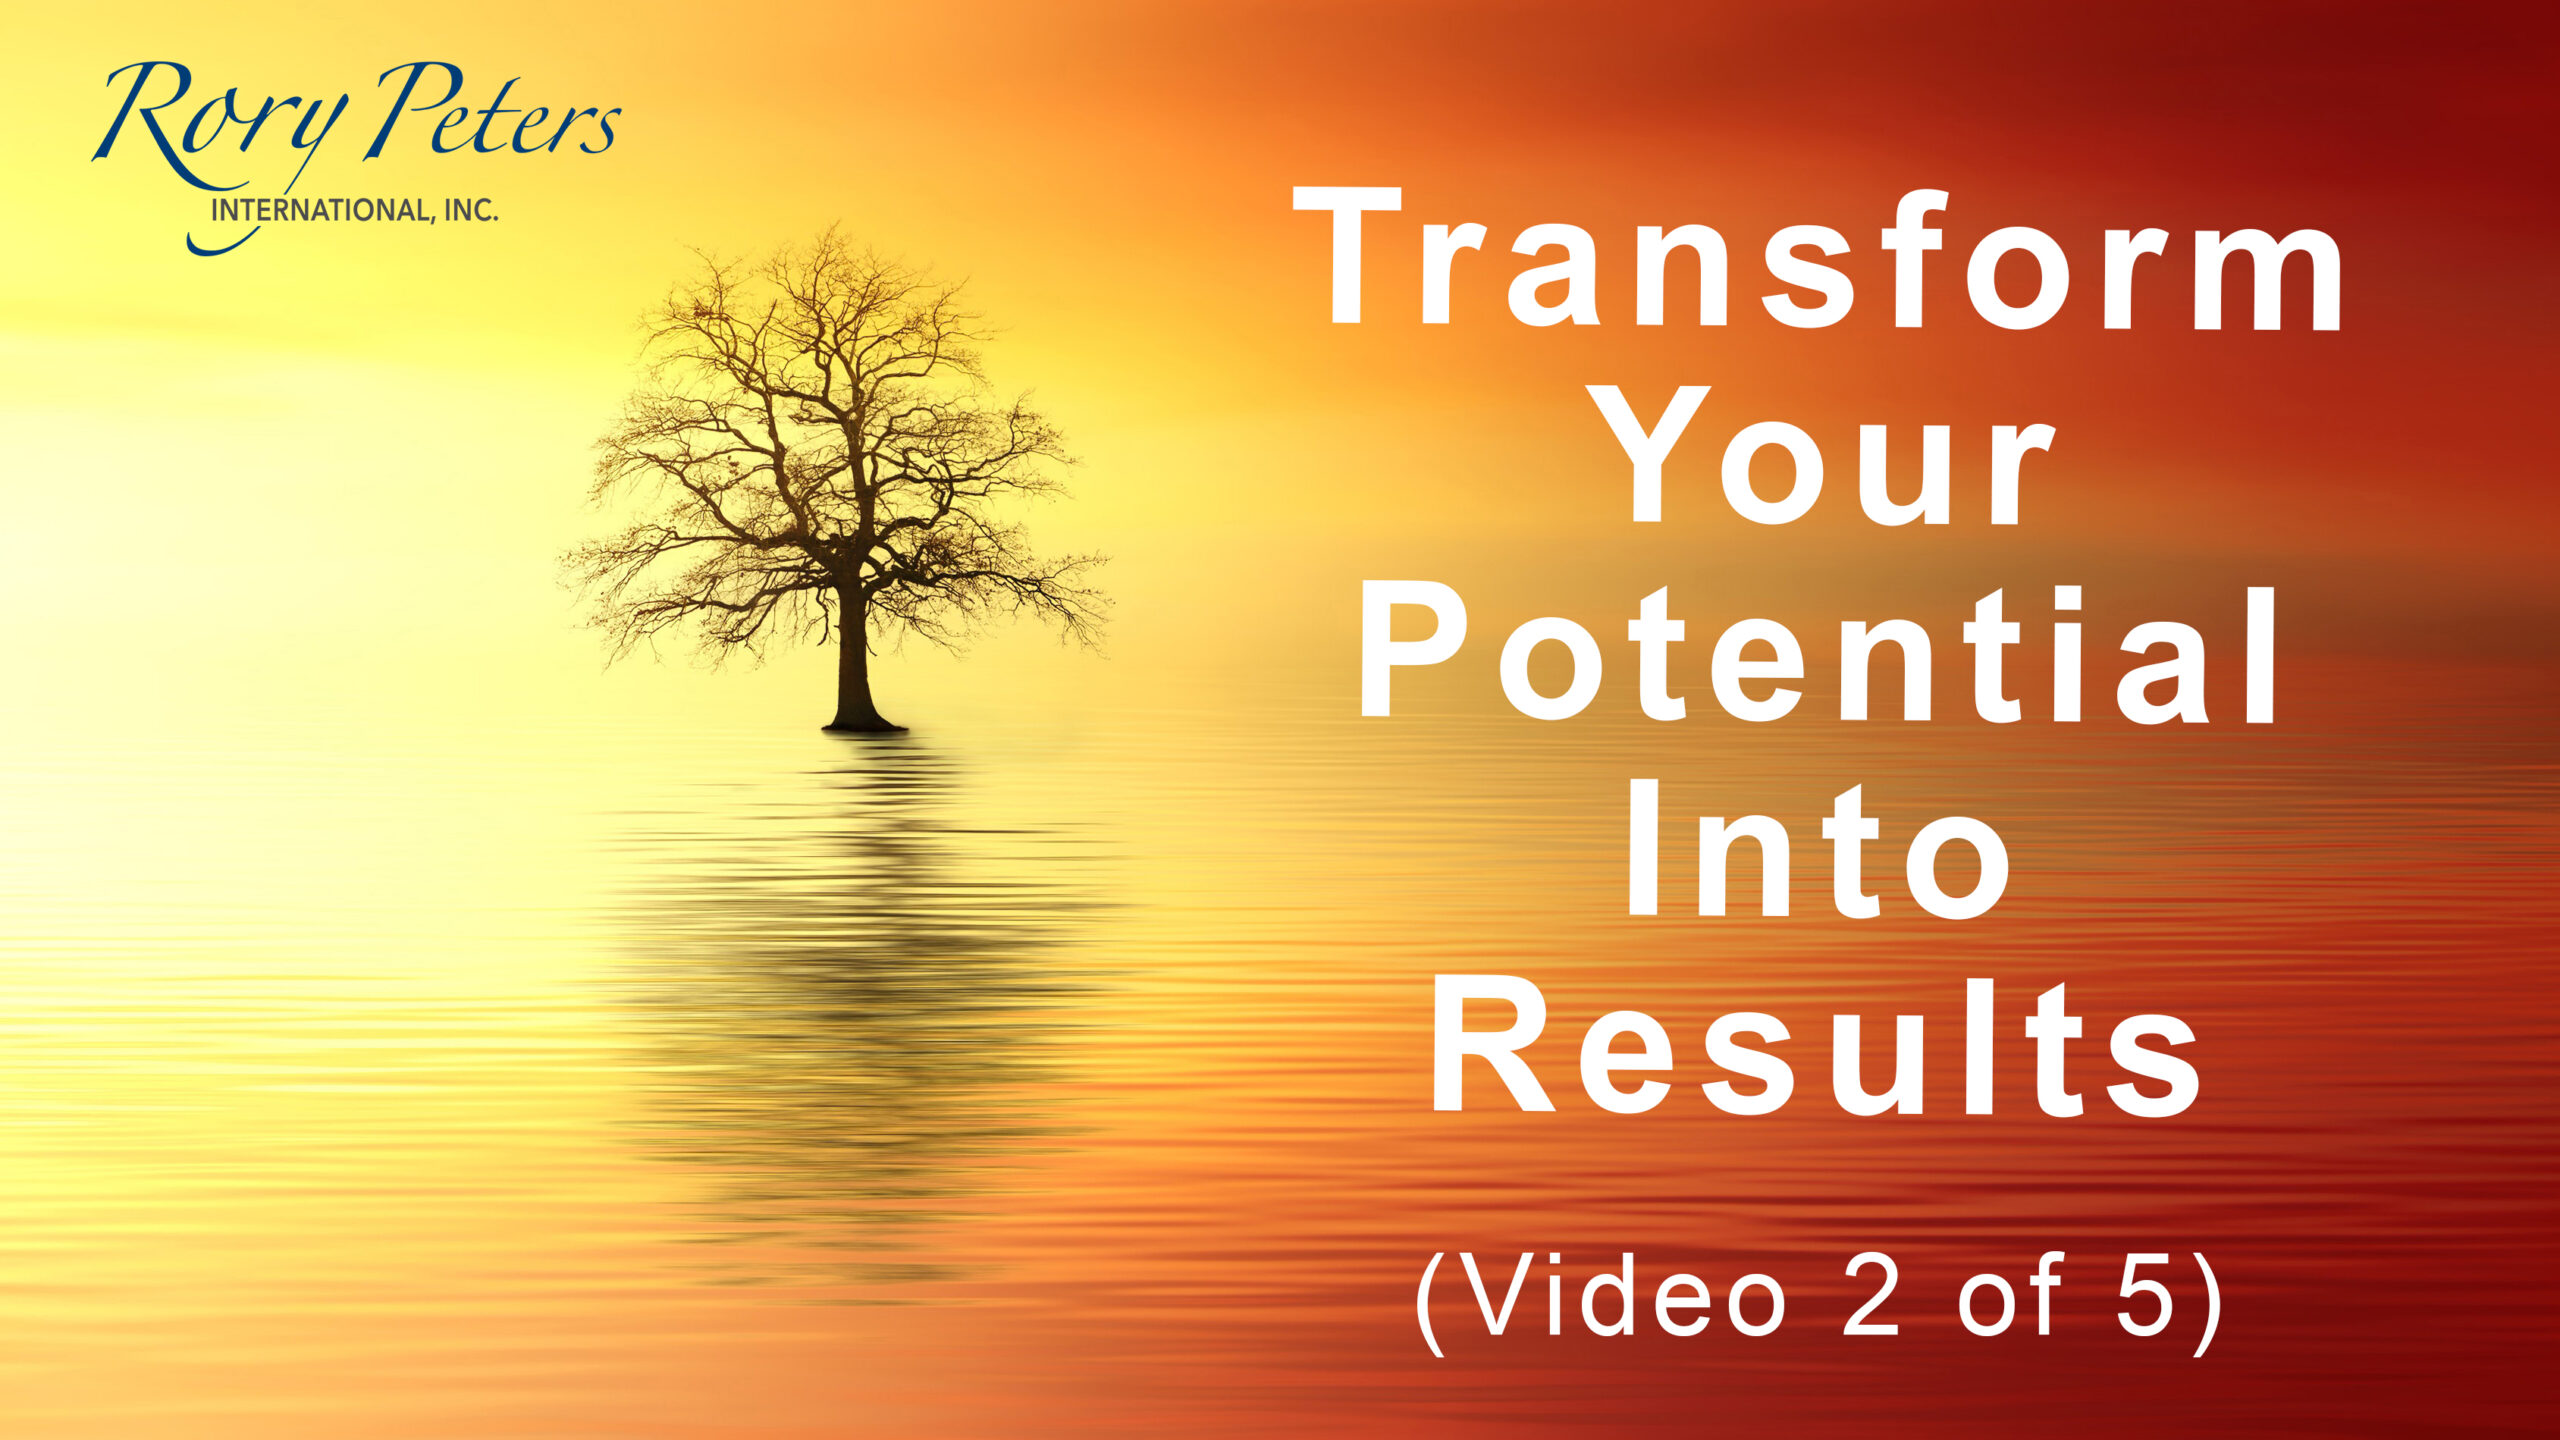 Transform Your Potential Into Results (1 of 5)Transform Your Potential Into Results (2 of 5)